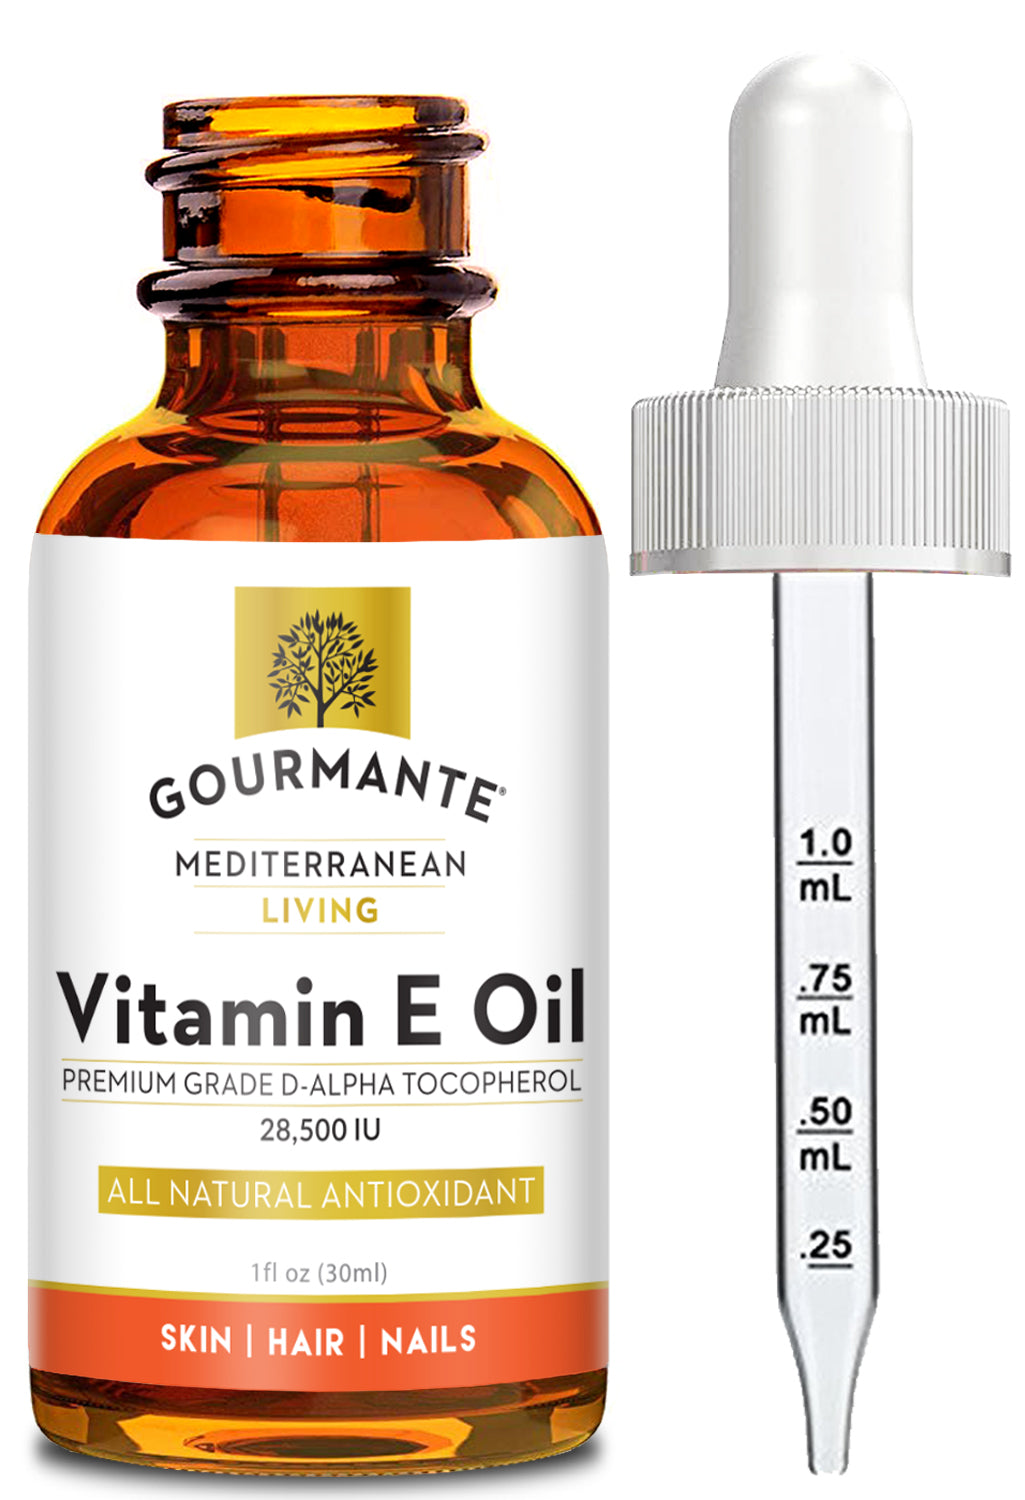 Gourmante Natural Vitamin E Oil